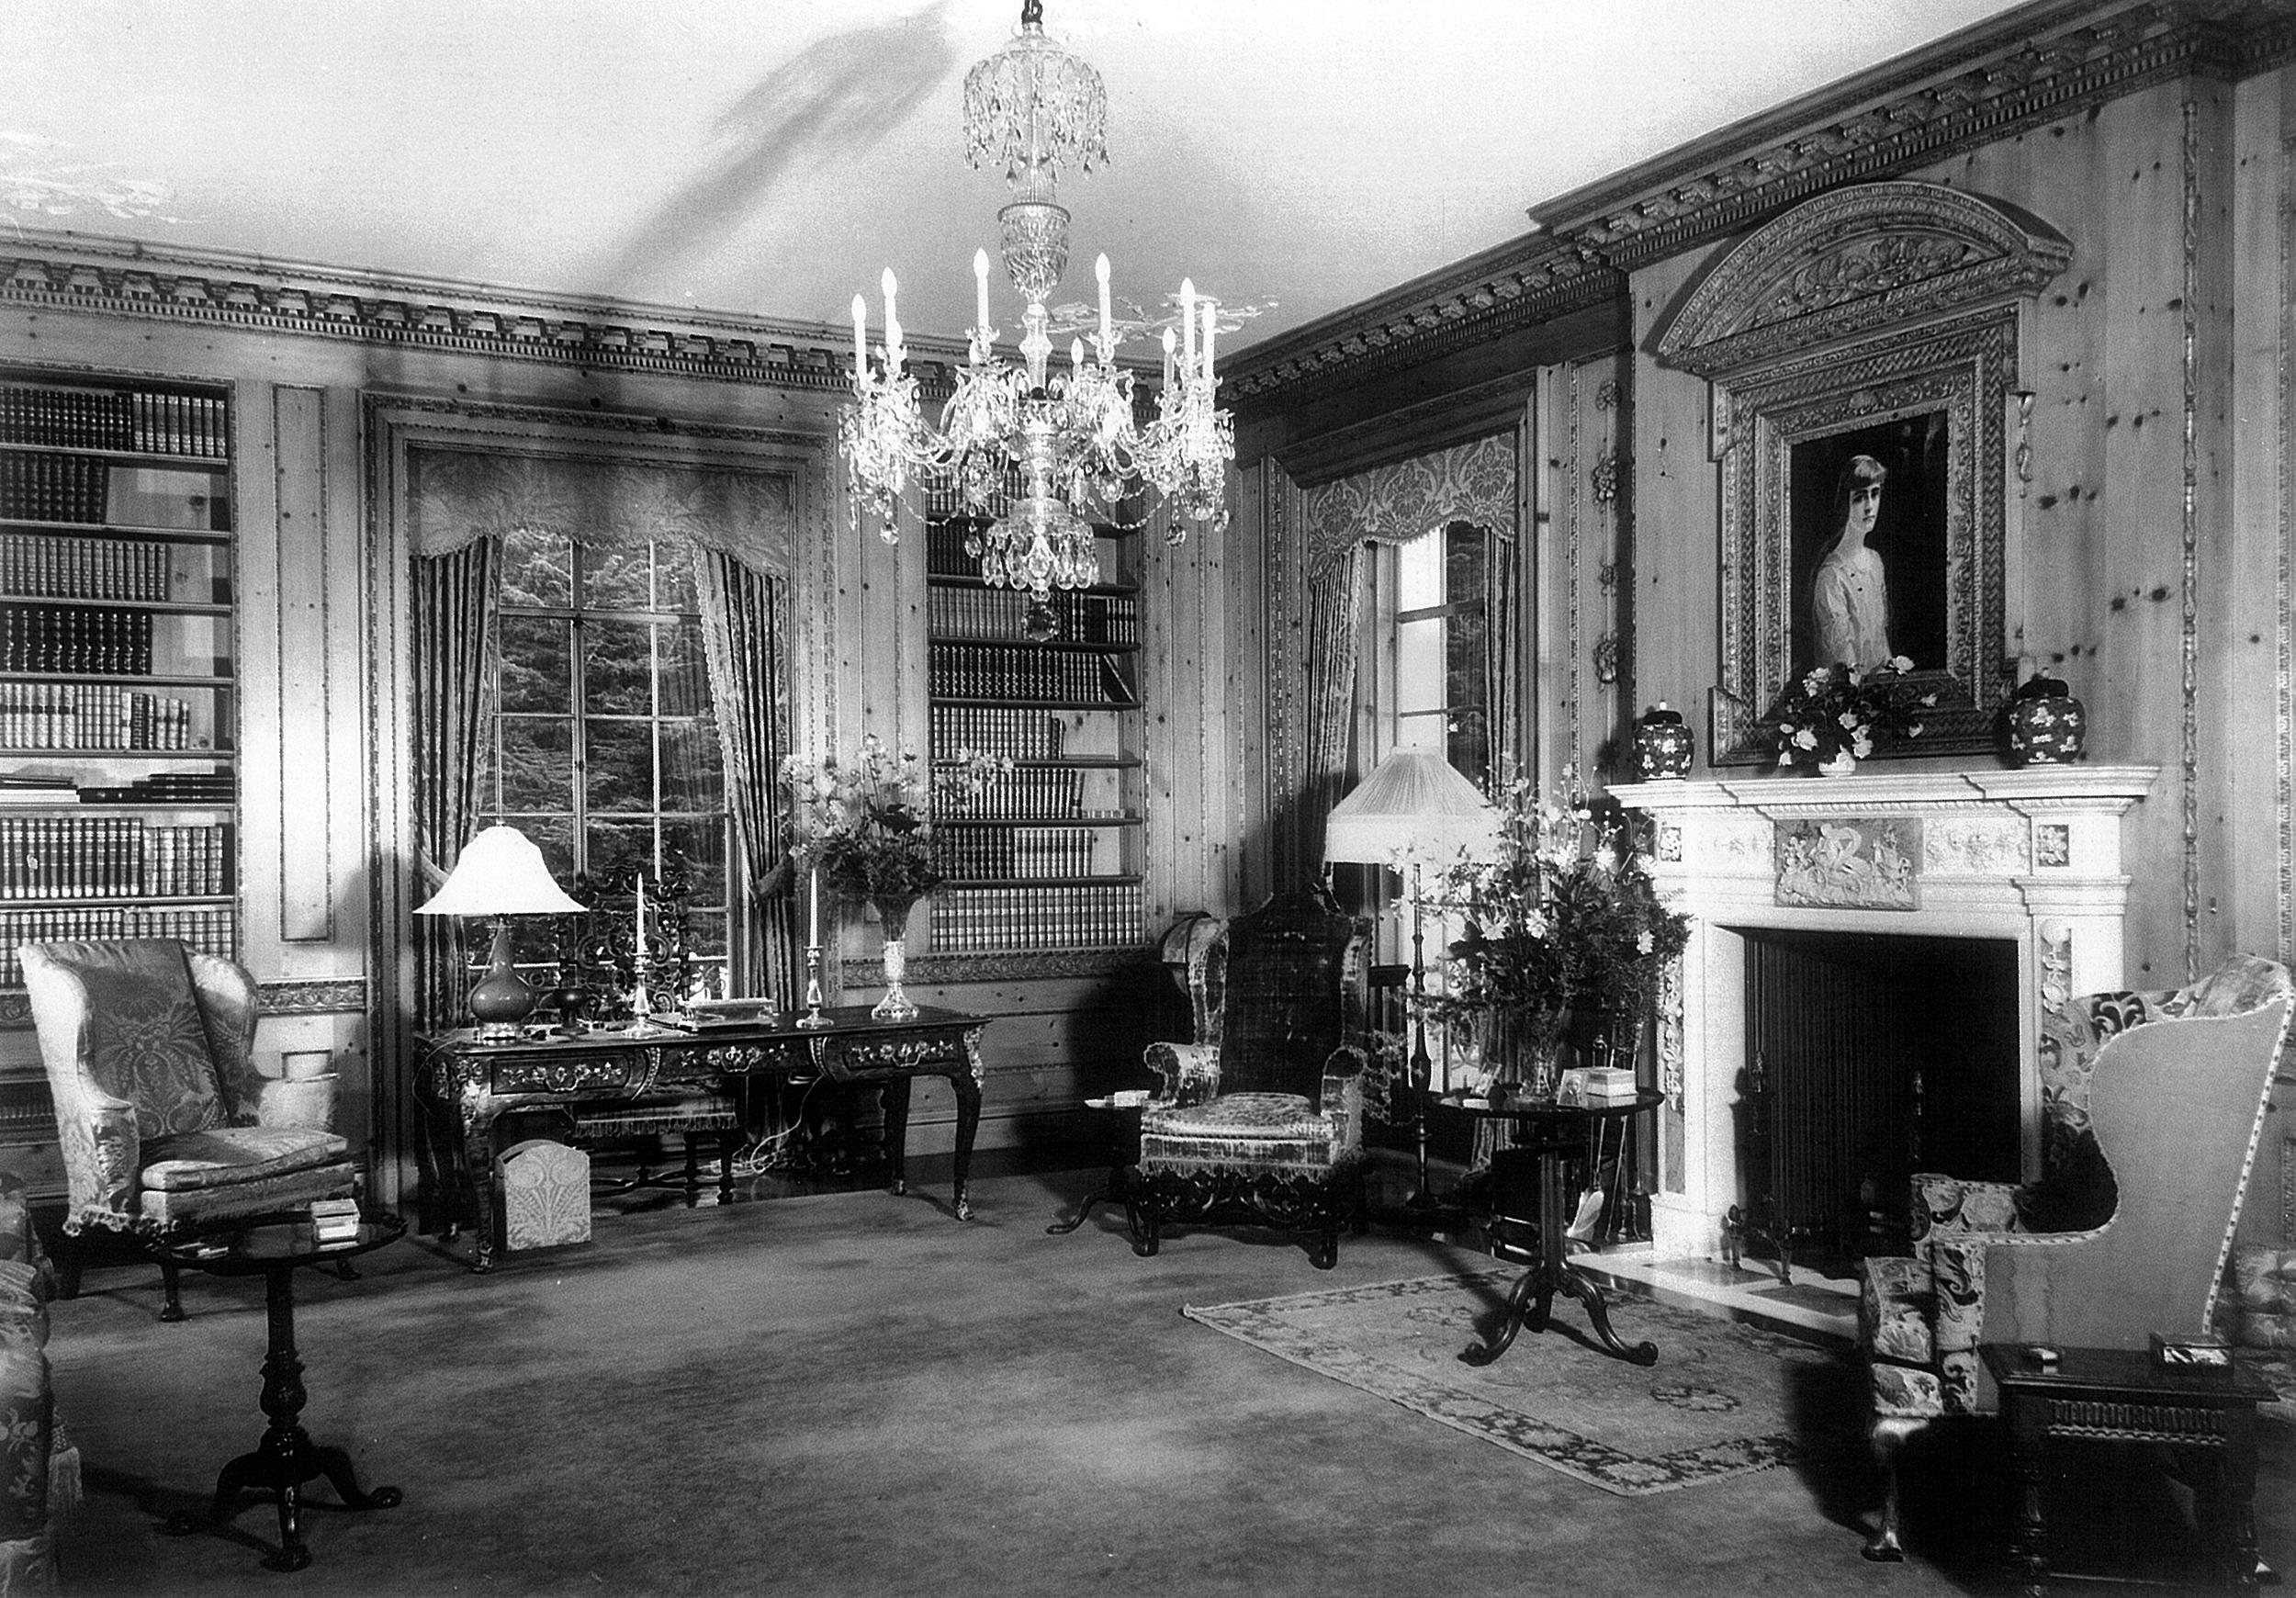 Image: The library in Huguette Clark's unused mansion